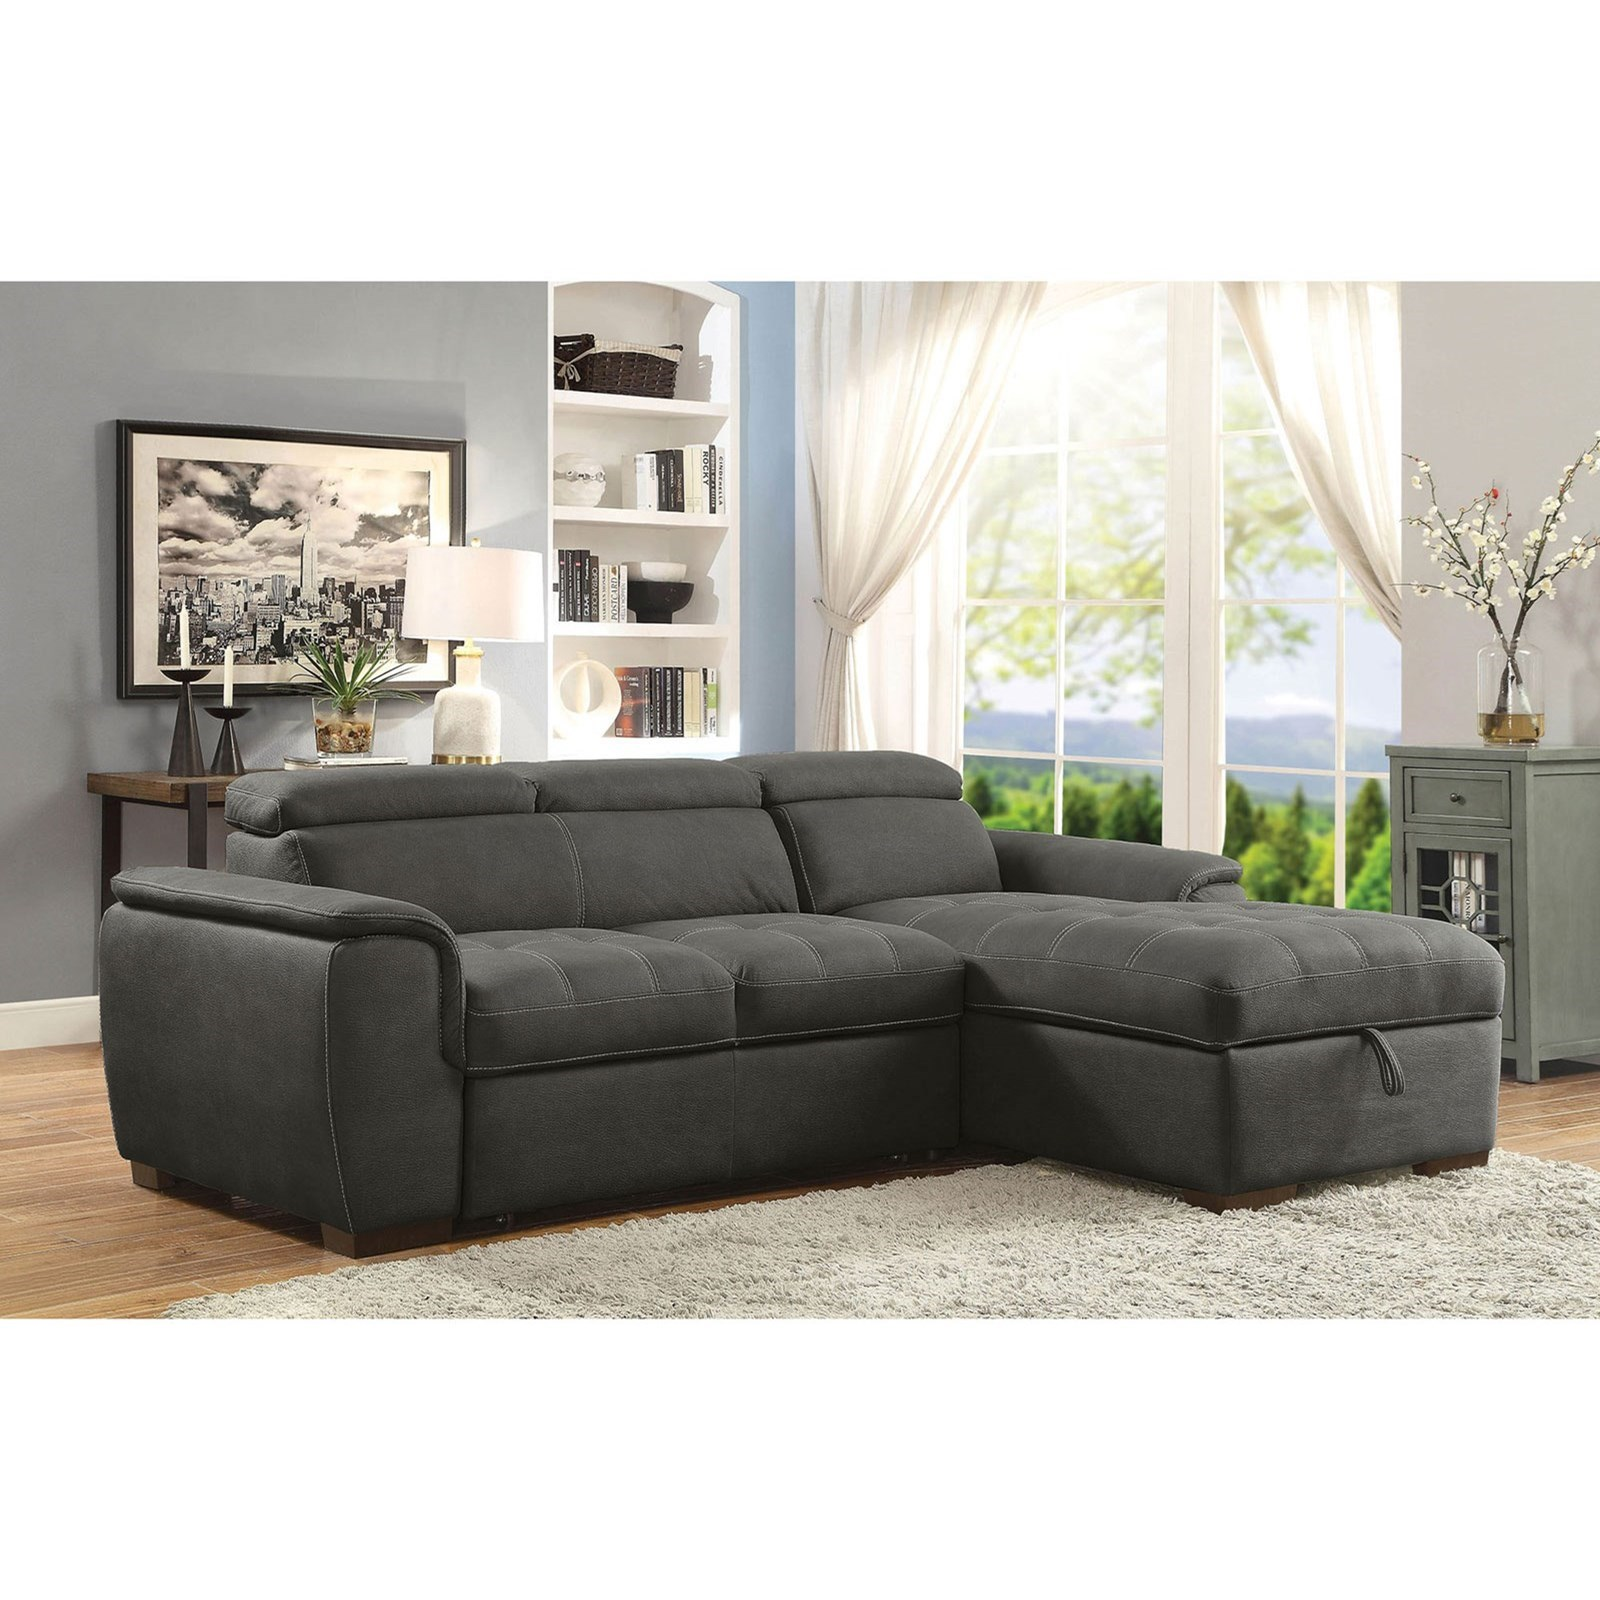 Sectional Pull Out Couch Patty Sofa Sectional With Pull Out Sleeper And Storage By Furniture Of America At Rooms For Less